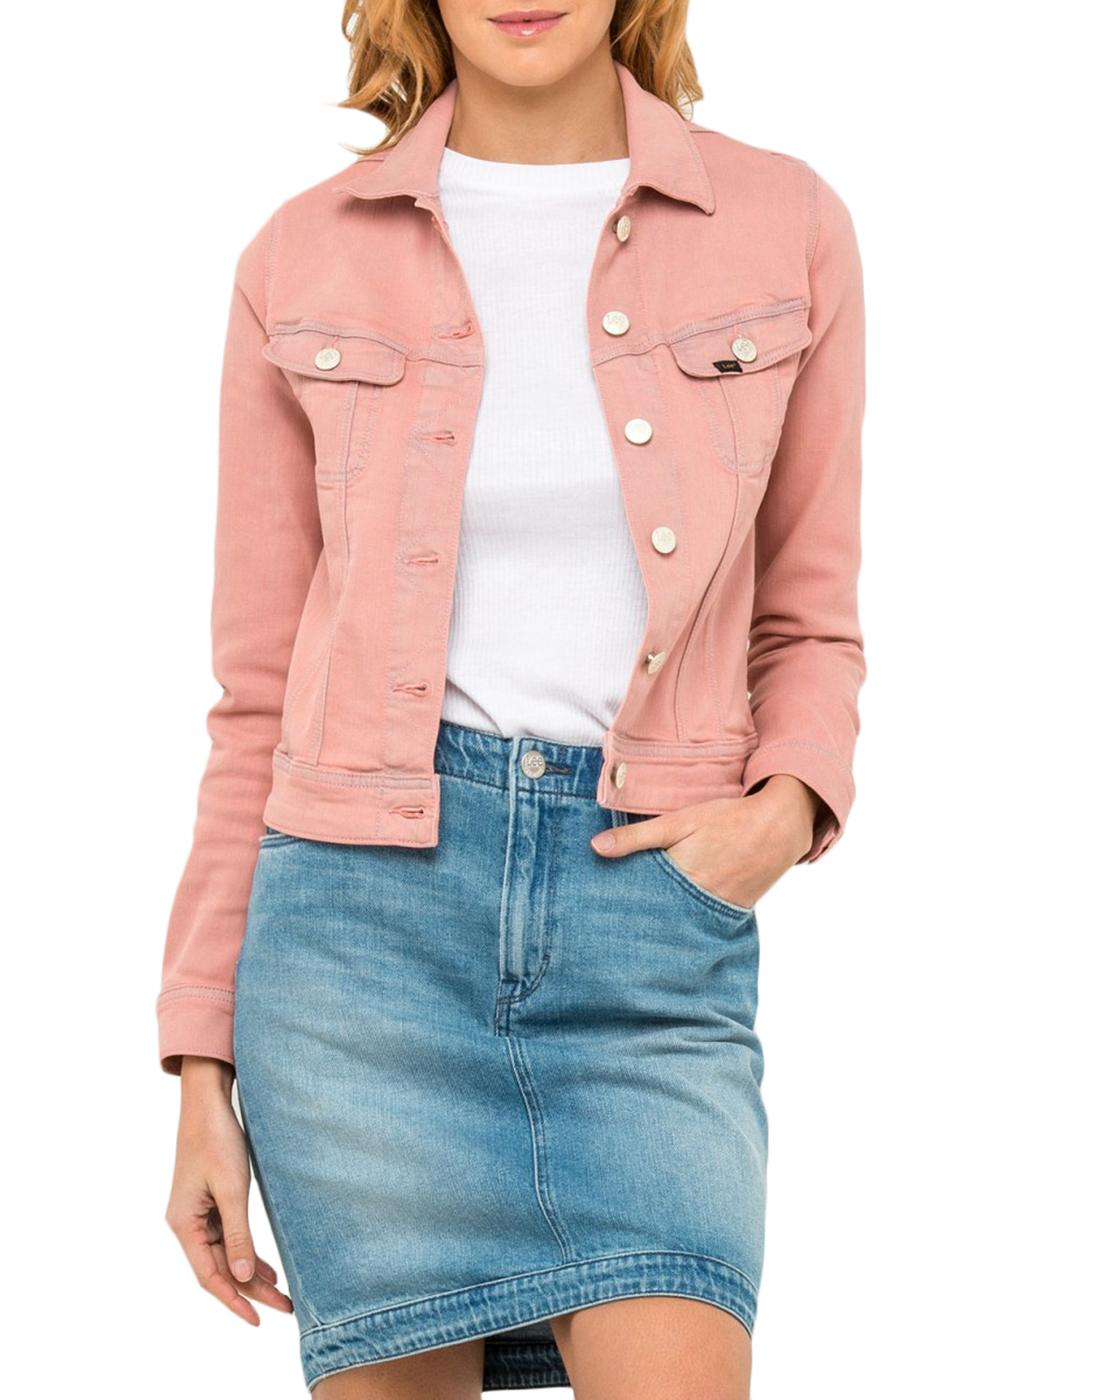 Rider LEE JEANS Womens Retro 70s Denim Jacket Pink